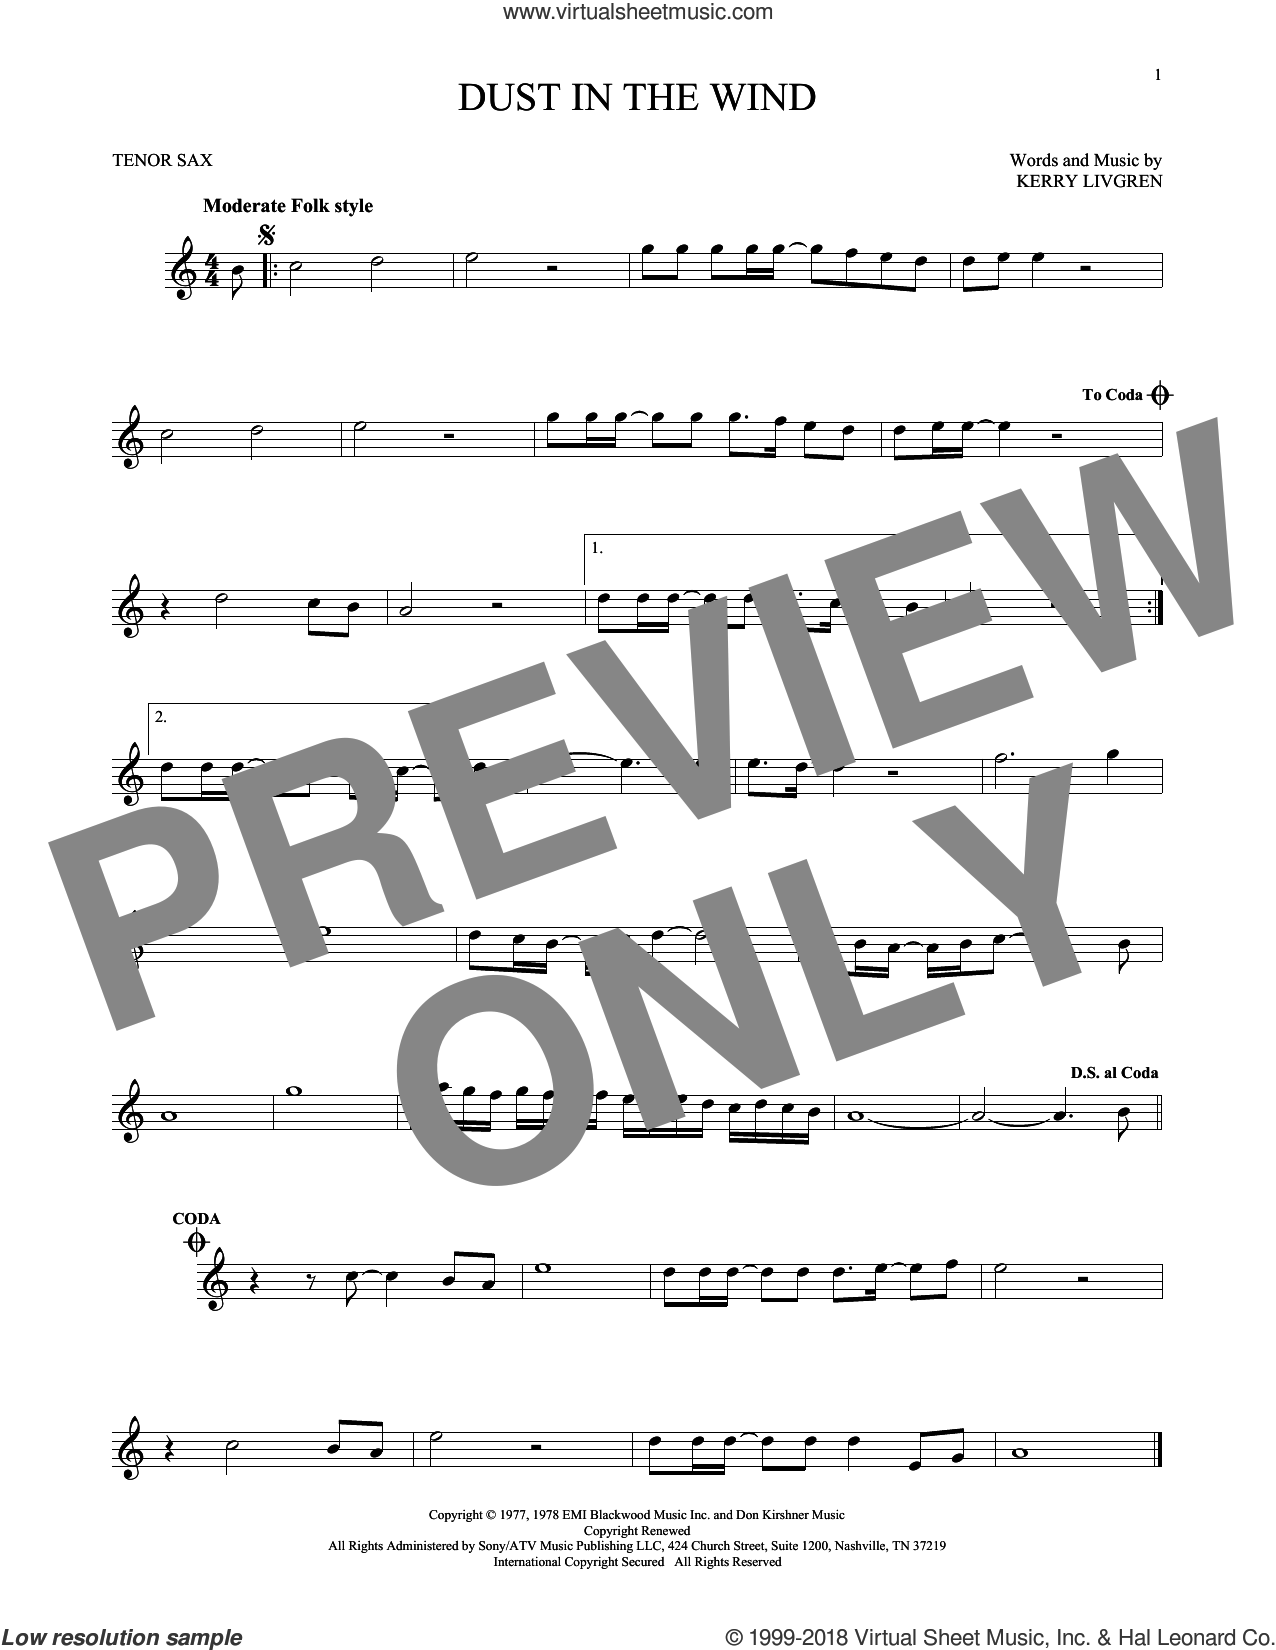 Dust In The Wind sheet music for tenor saxophone solo by Kansas and Kerry Livgren, intermediate skill level